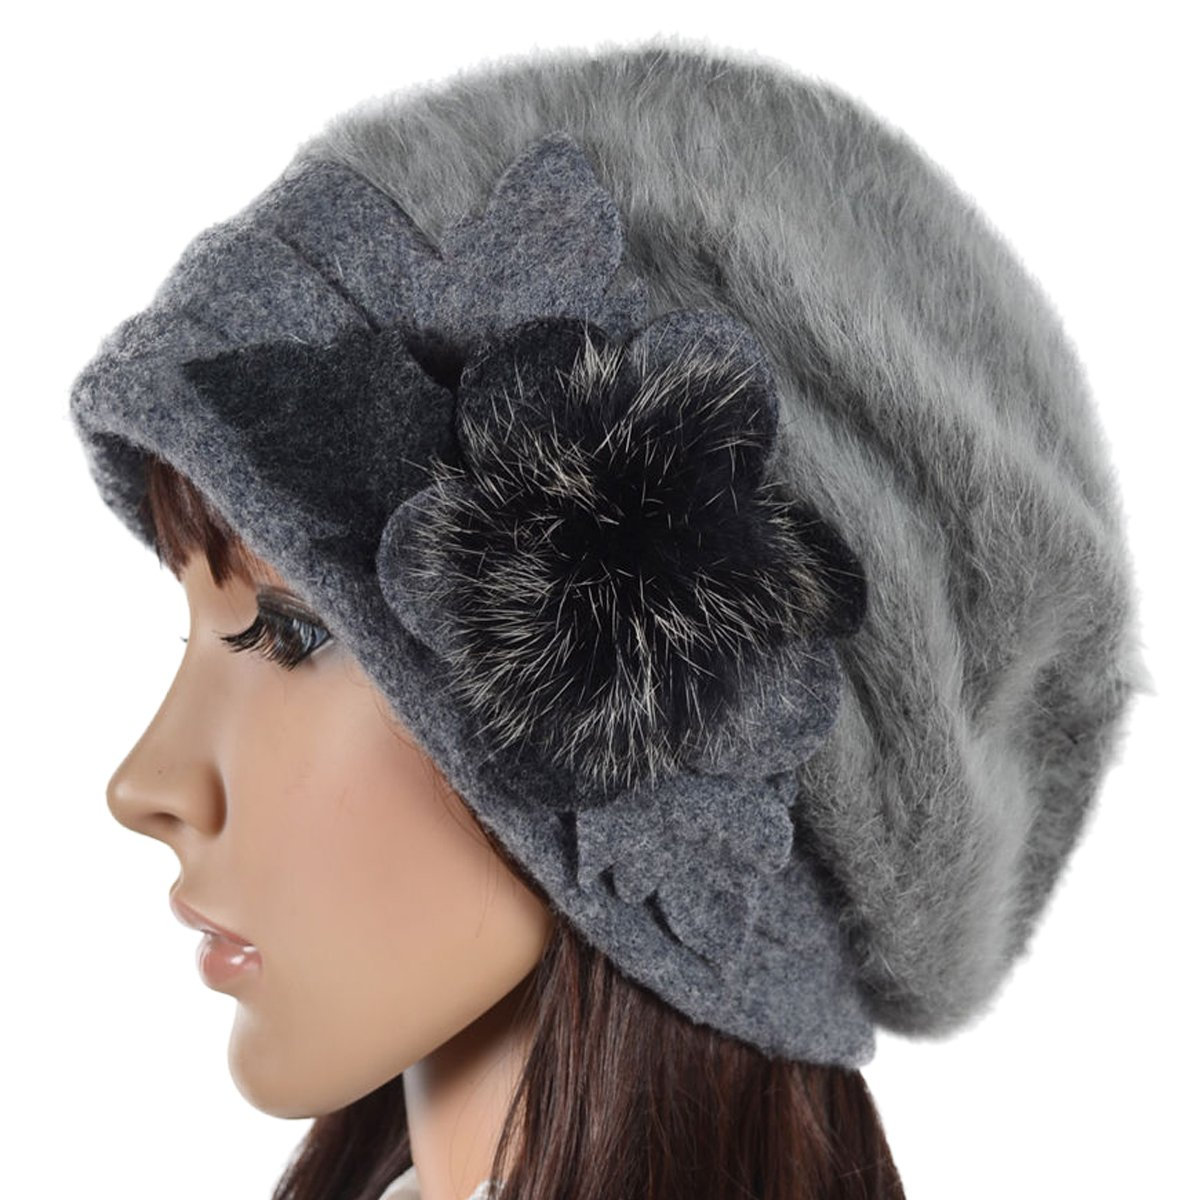 Women's French Beret - 100% Wool Cloche Hat - Beret Beanie for Winter C020 (Br022-Grey)